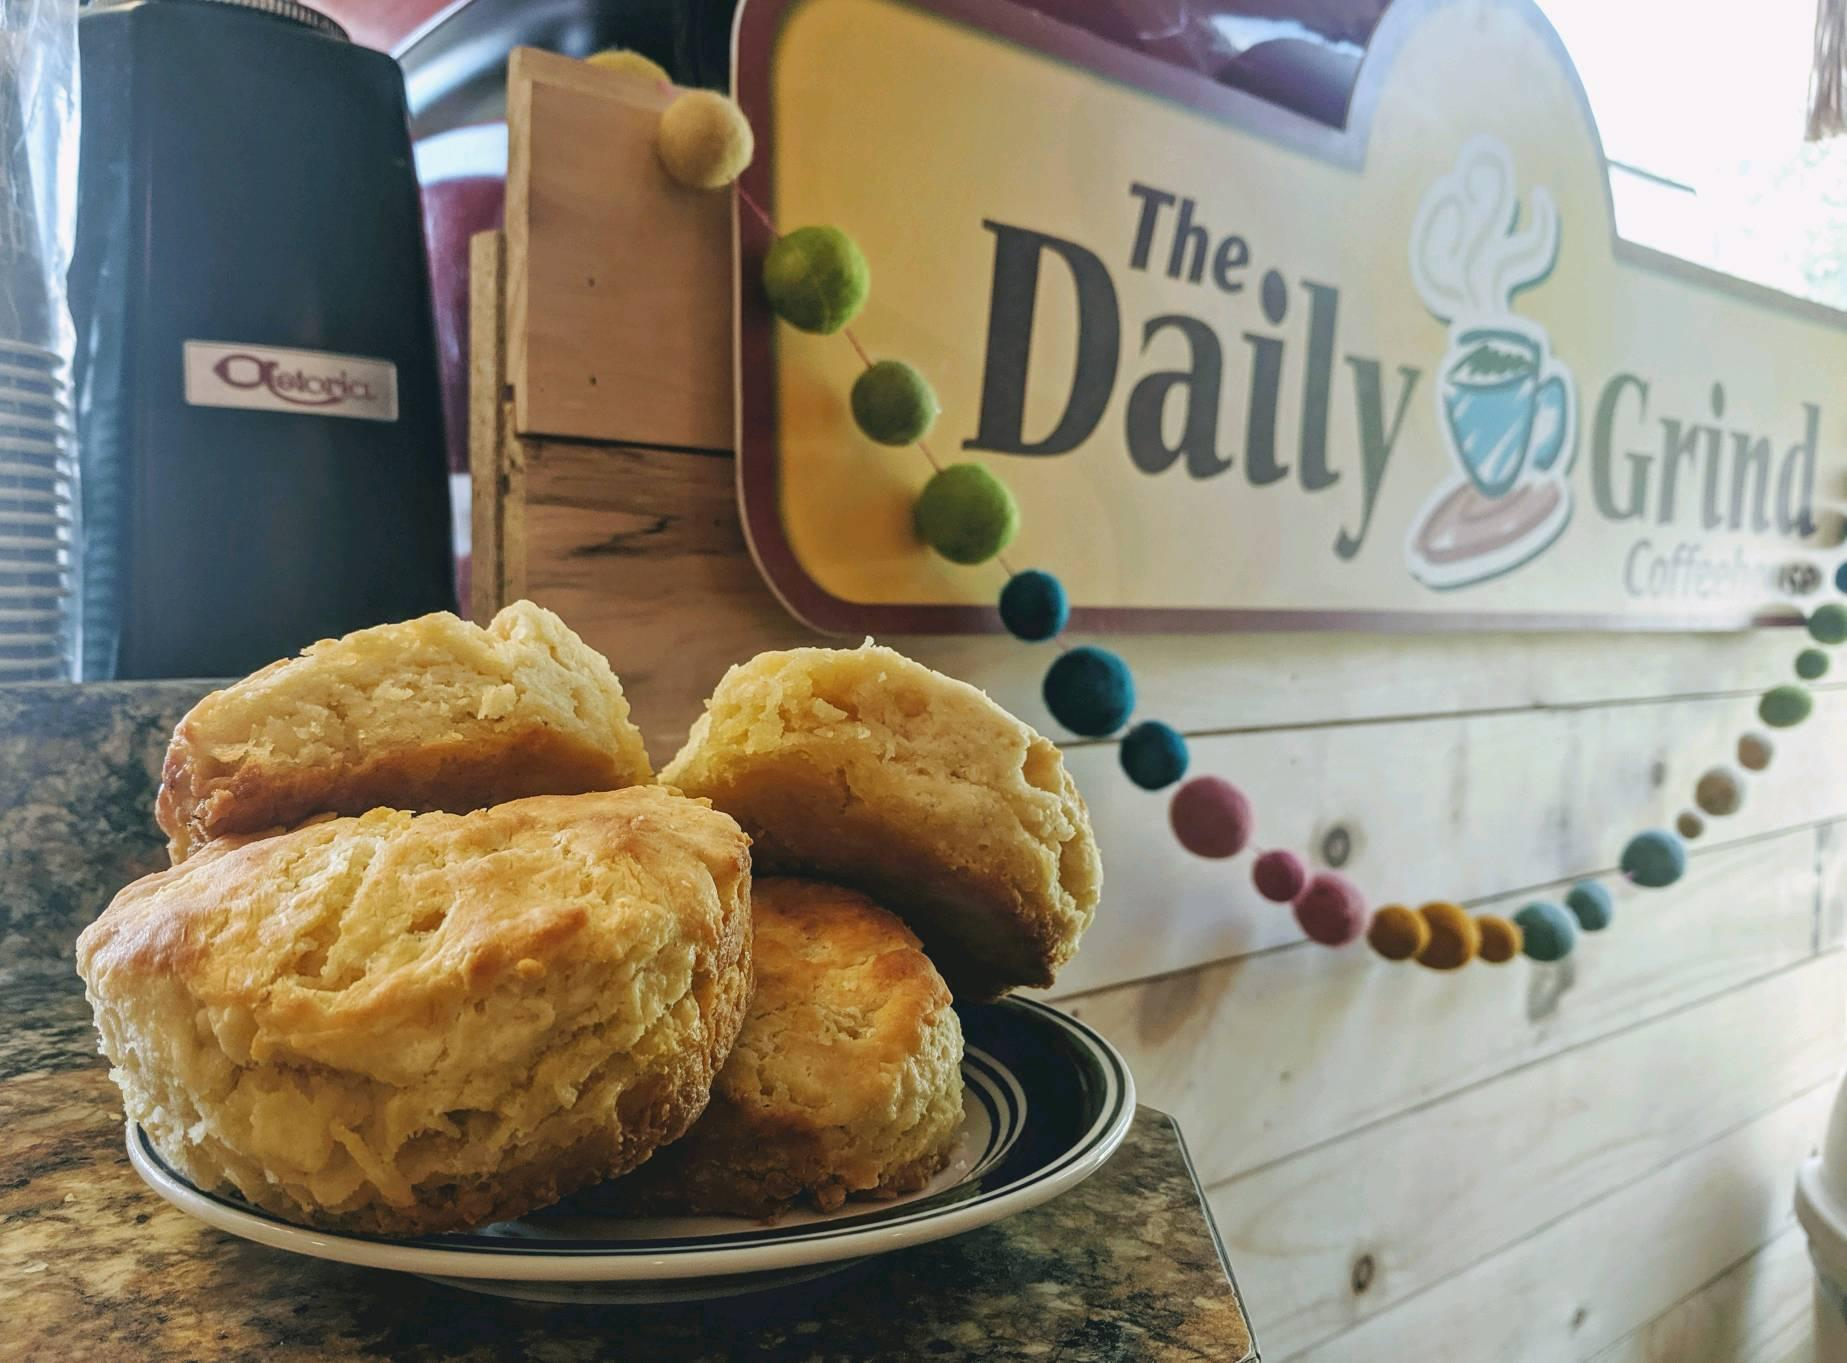 The Daily Grind Coffeehouse in Gering